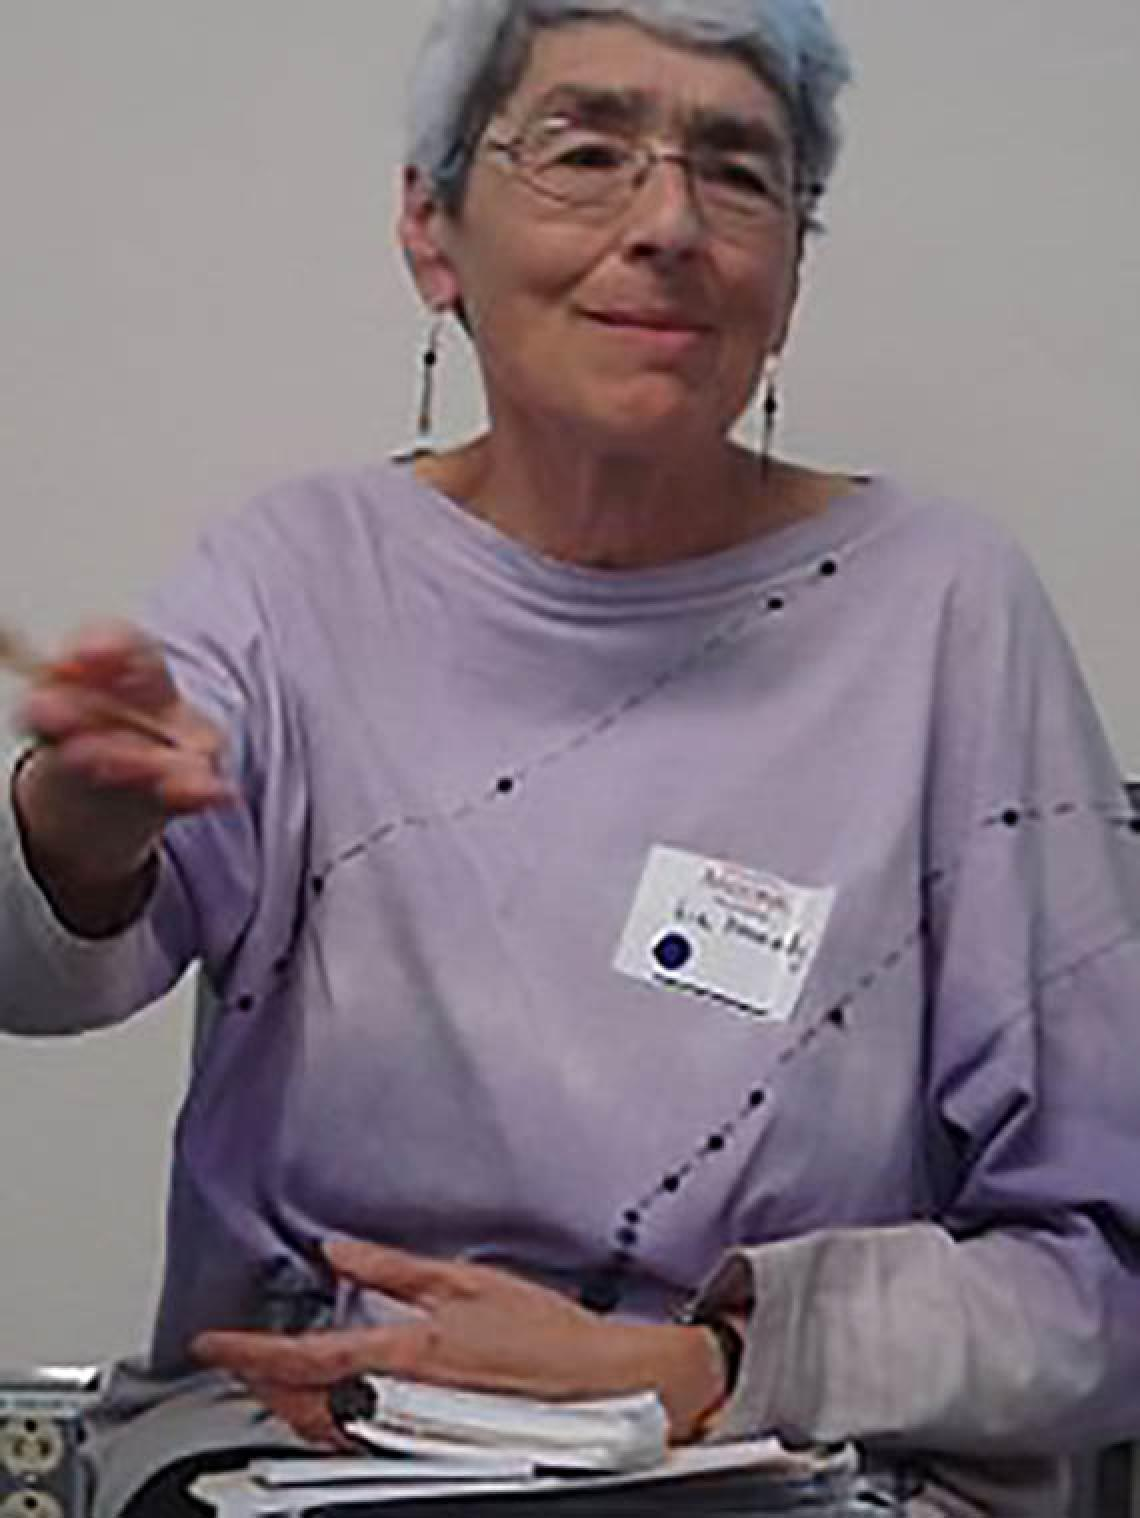 Dr. Liz Kennedy moving hands while speaking